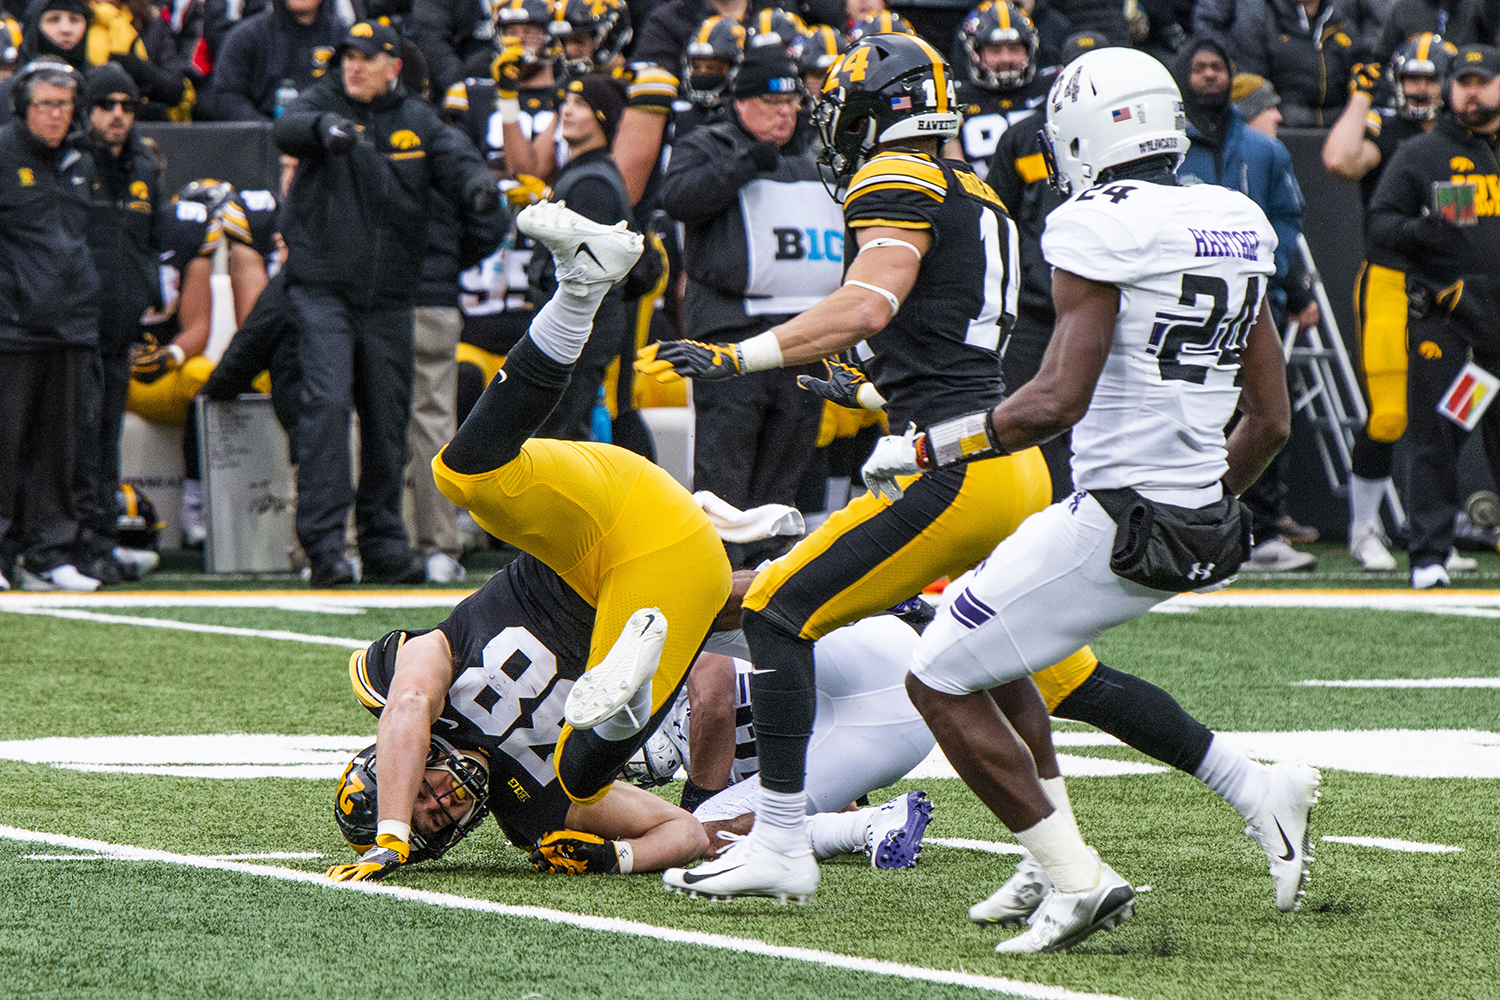 Iowa+tight+end+T.J.+Hockenson+is+tackled+during+the+Iowa%2FNorthwestern+game+at+Kinnick+Stadium+on+Saturday%2C+November+10%2C+2018.+The+Wildcats+defeated+the+Hawkeyes+14-10.+%28Katina+Zentz%2FThe+Daily+Iowan%29